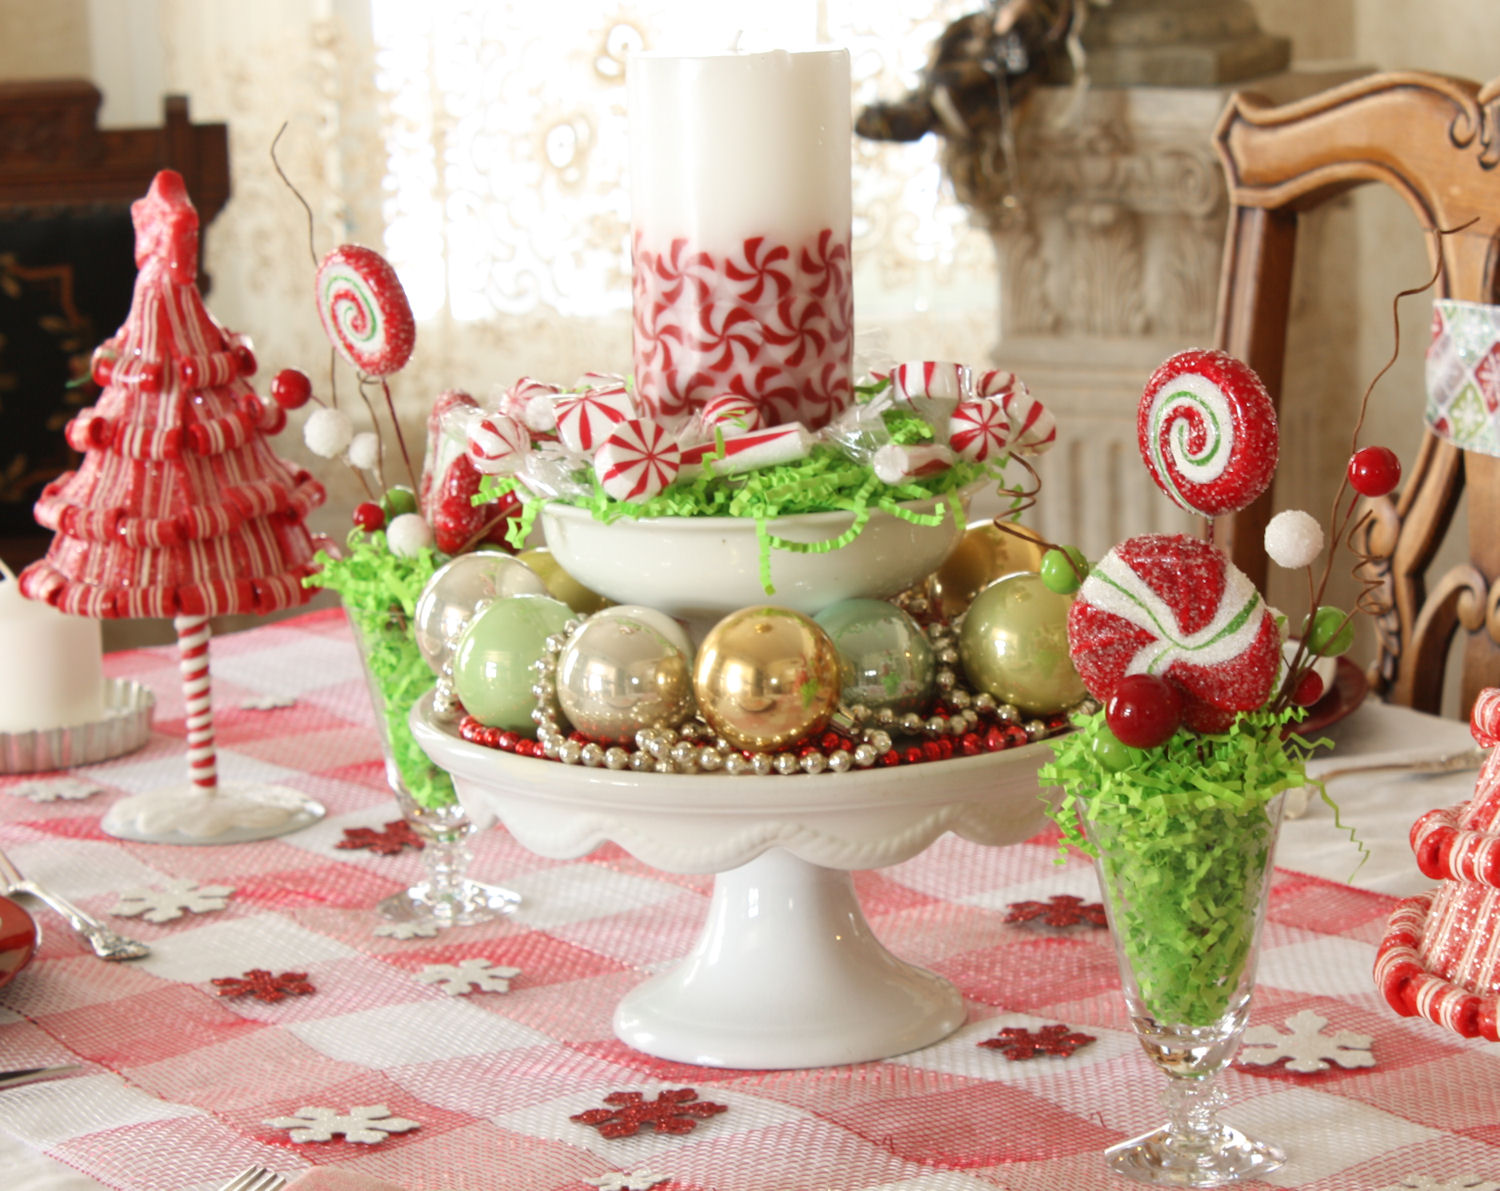 French laundry christmas peppermint tablescape 2011 - Christmas table setting ideas ...